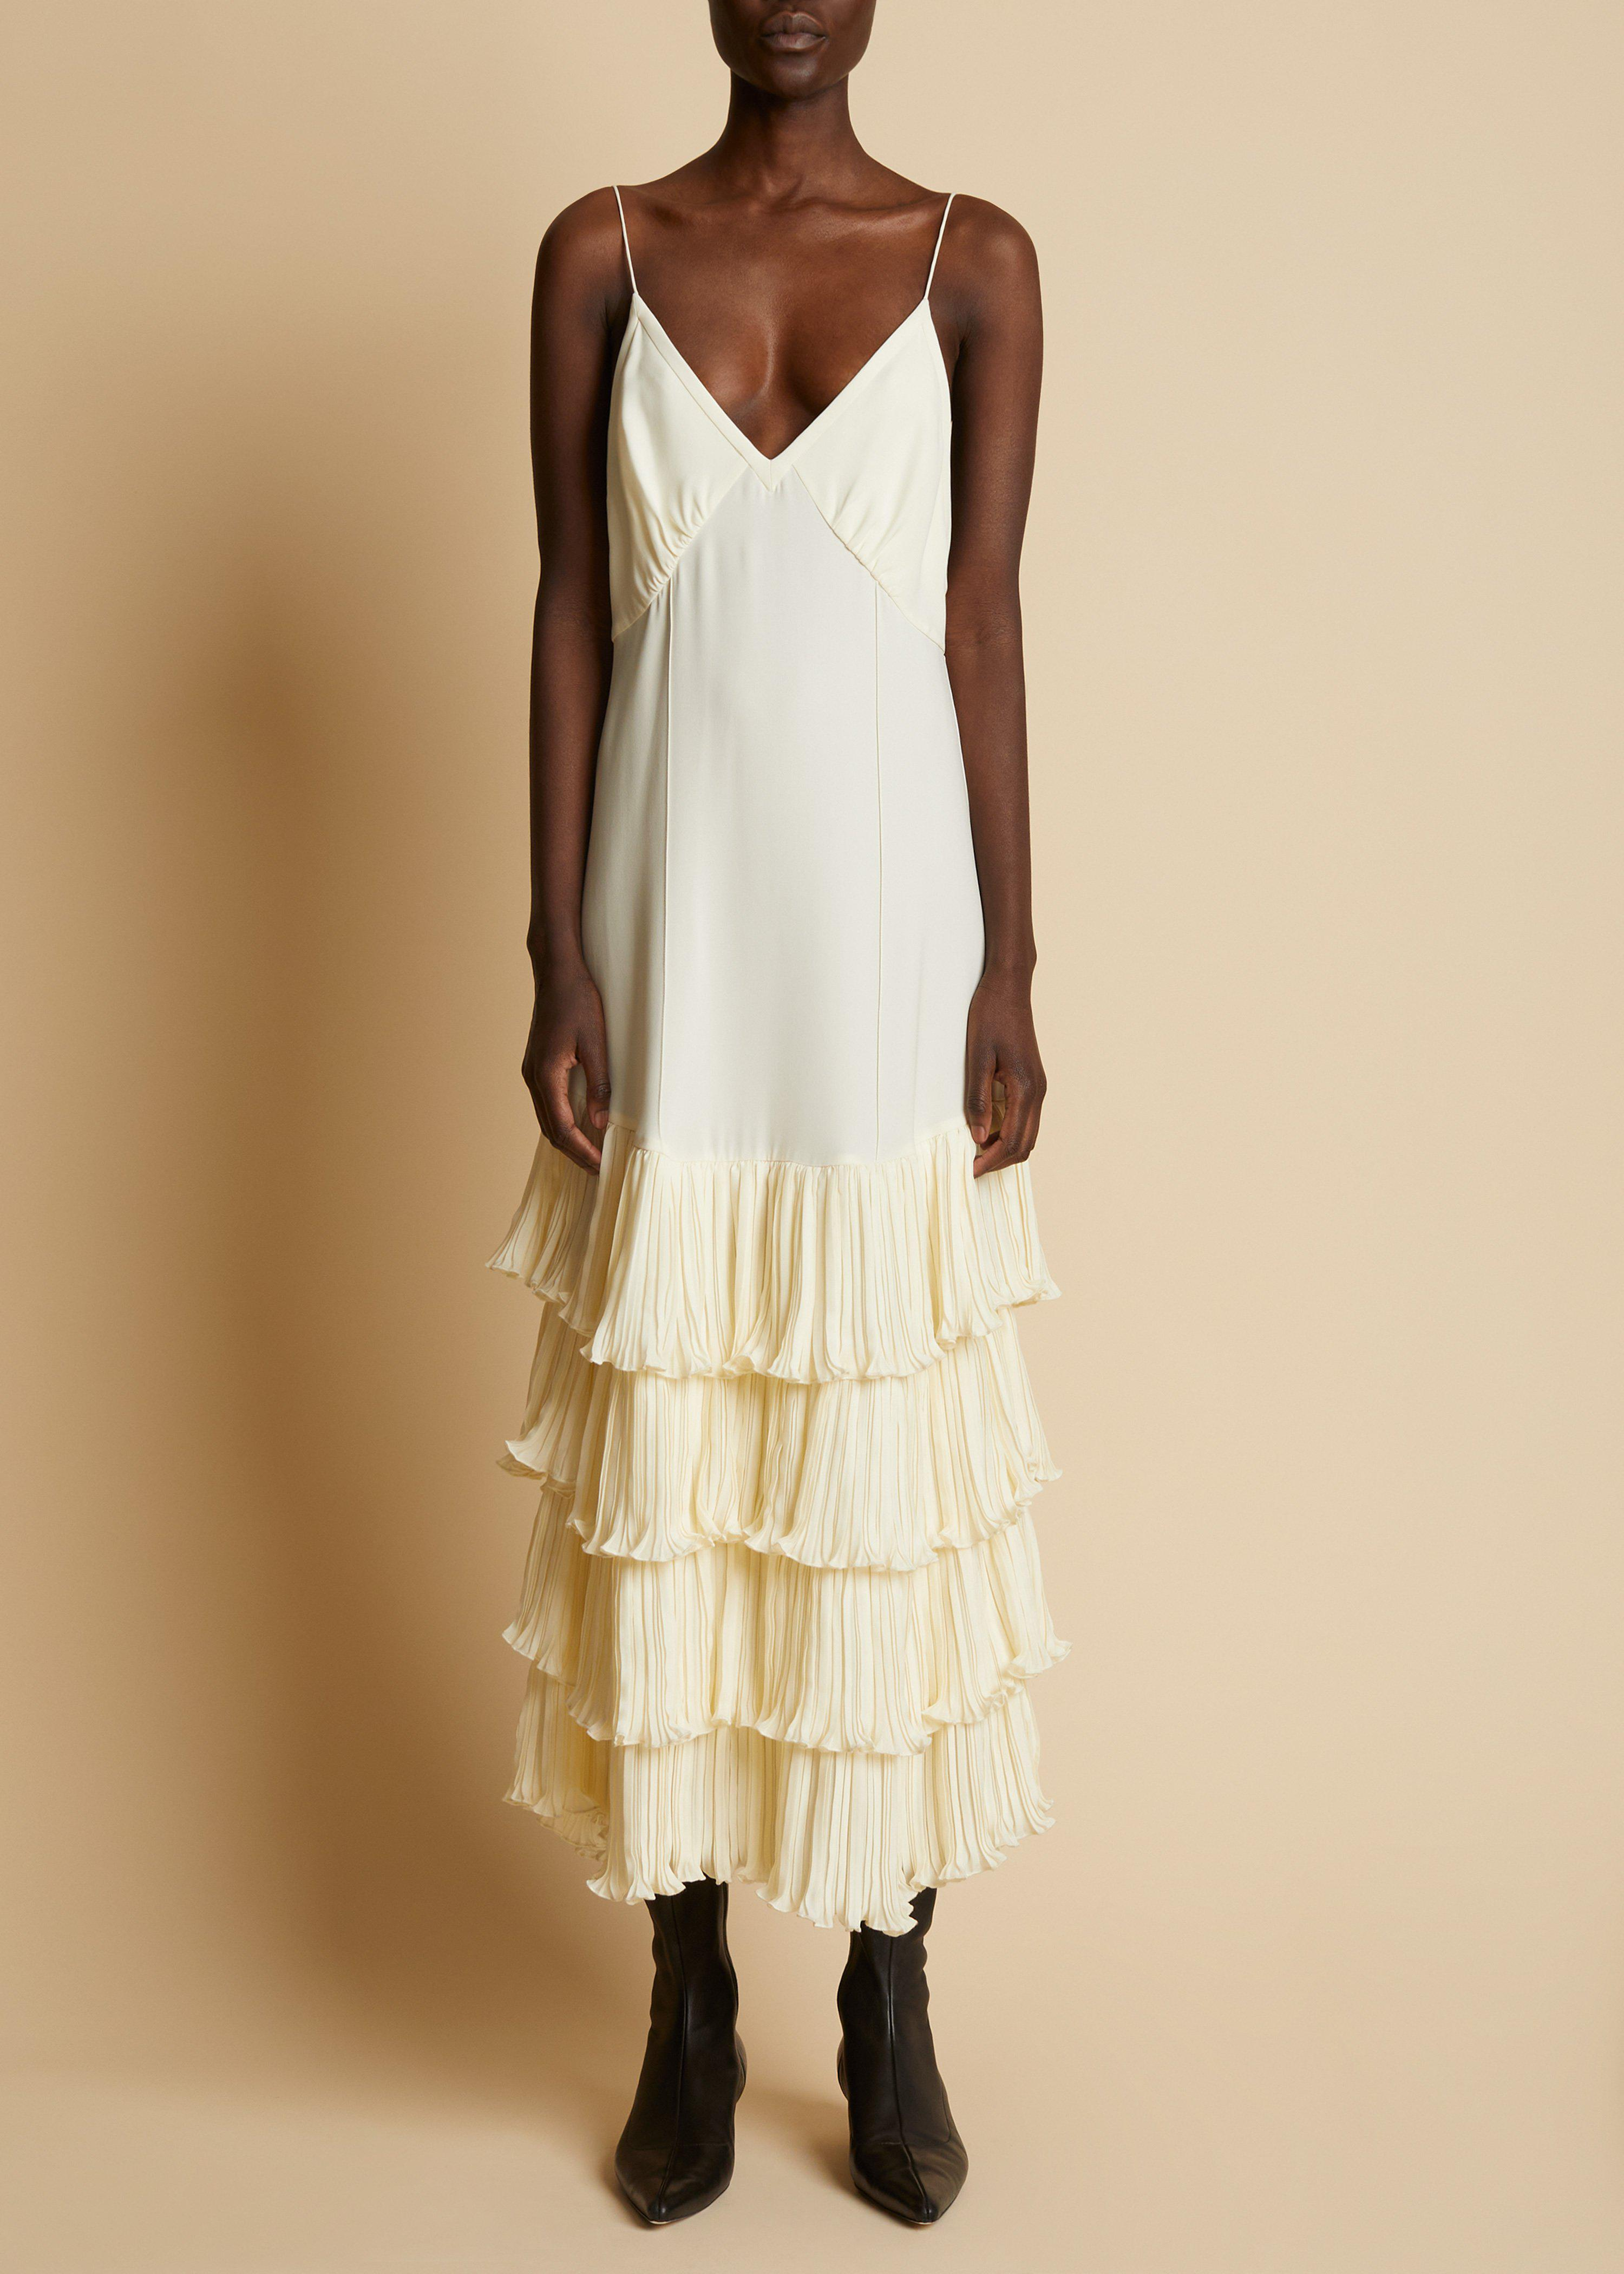 The Myrtle Dress in Ivory 1